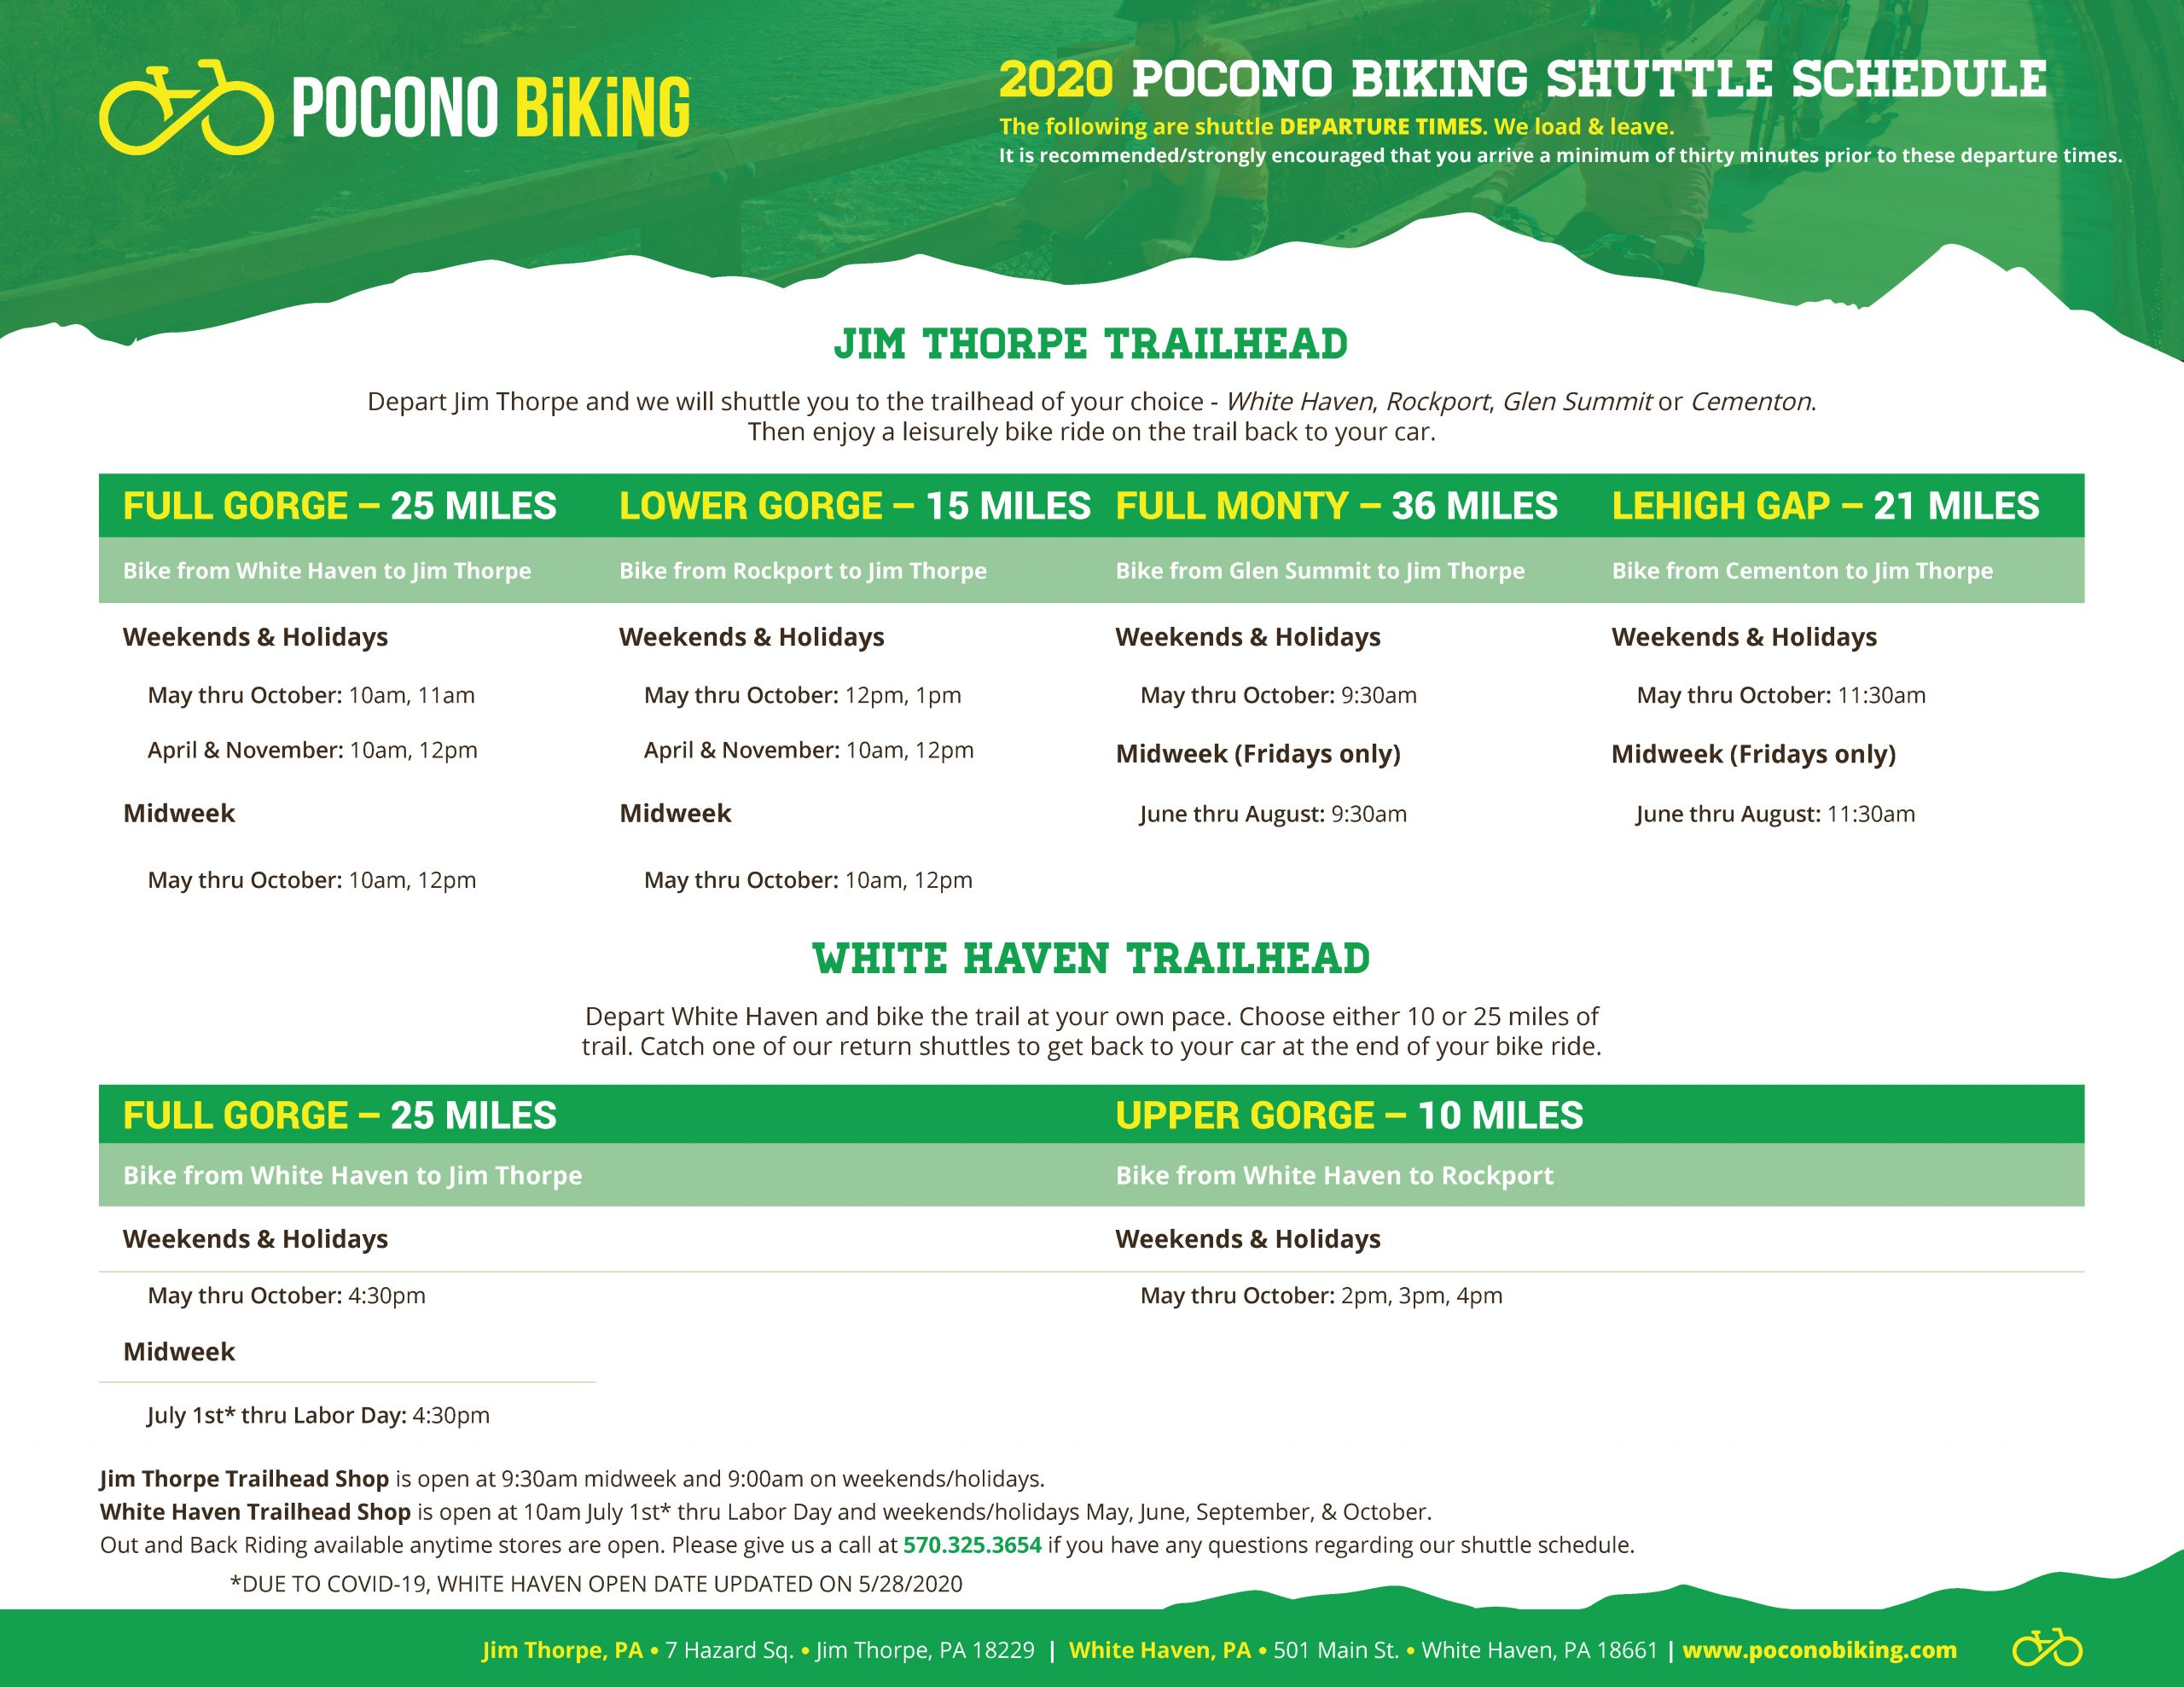 Pocono Biking Shuttle Scheduled 2020 (updated 5/28/20)